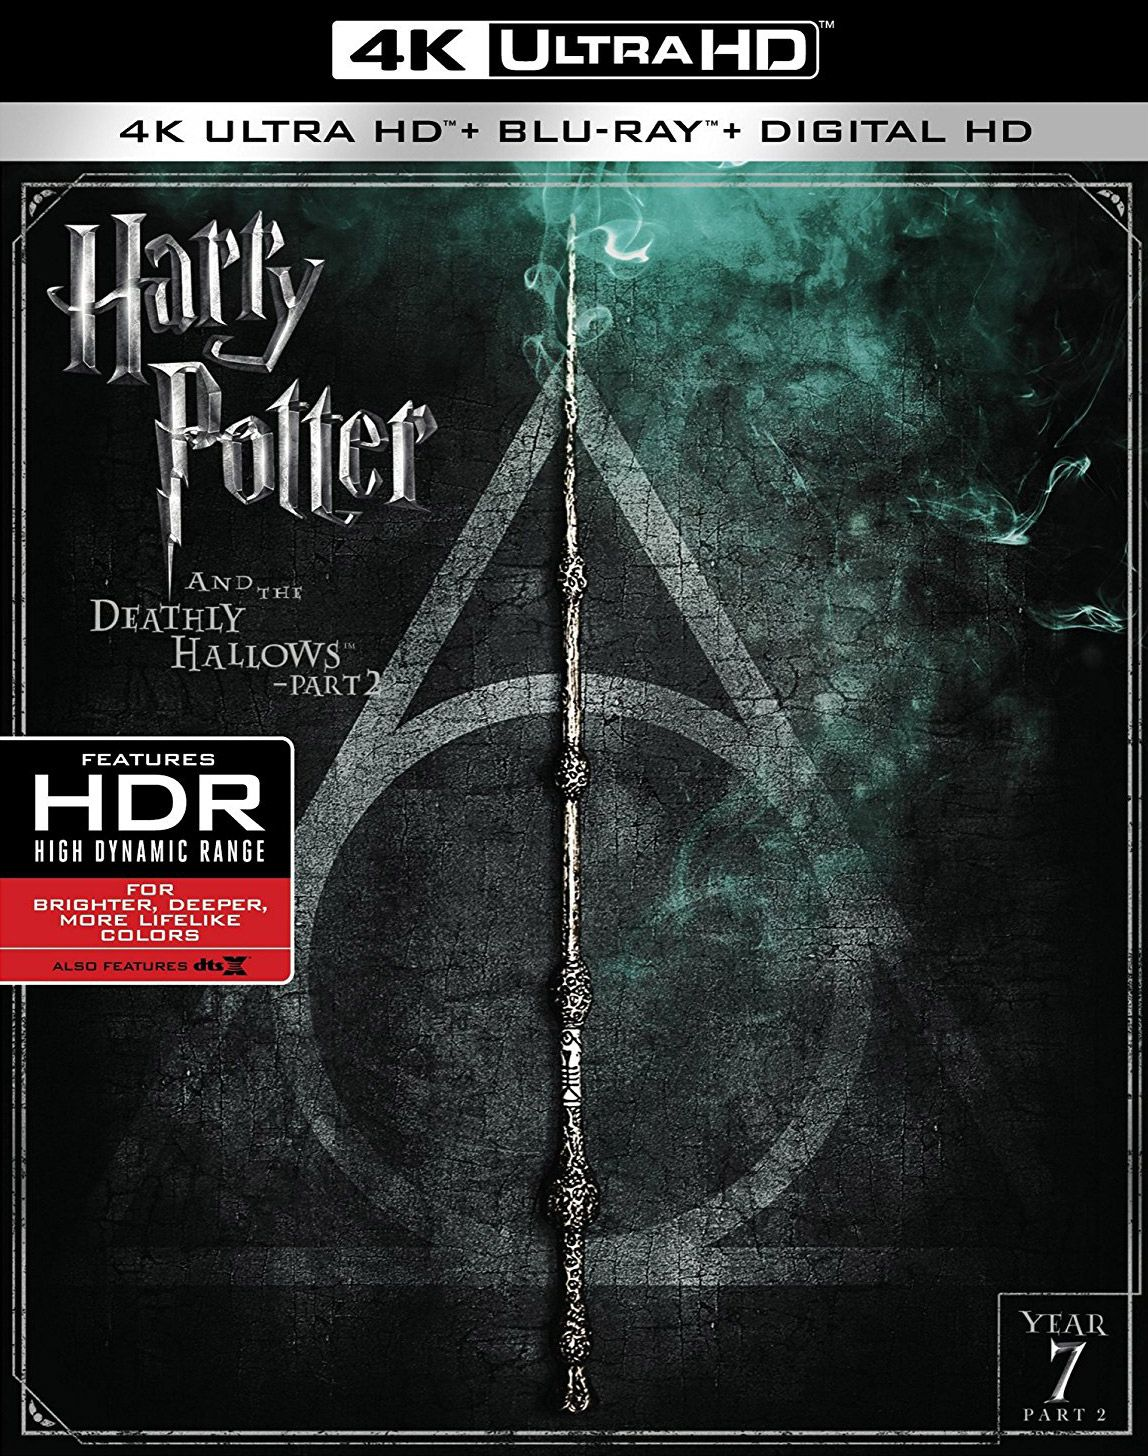 Harry Potter And The Deathly Hallows Part 2 4k Ultra Hd Review Deathly Hallows Part 2 Harry Potter 4k Harry Potter Film